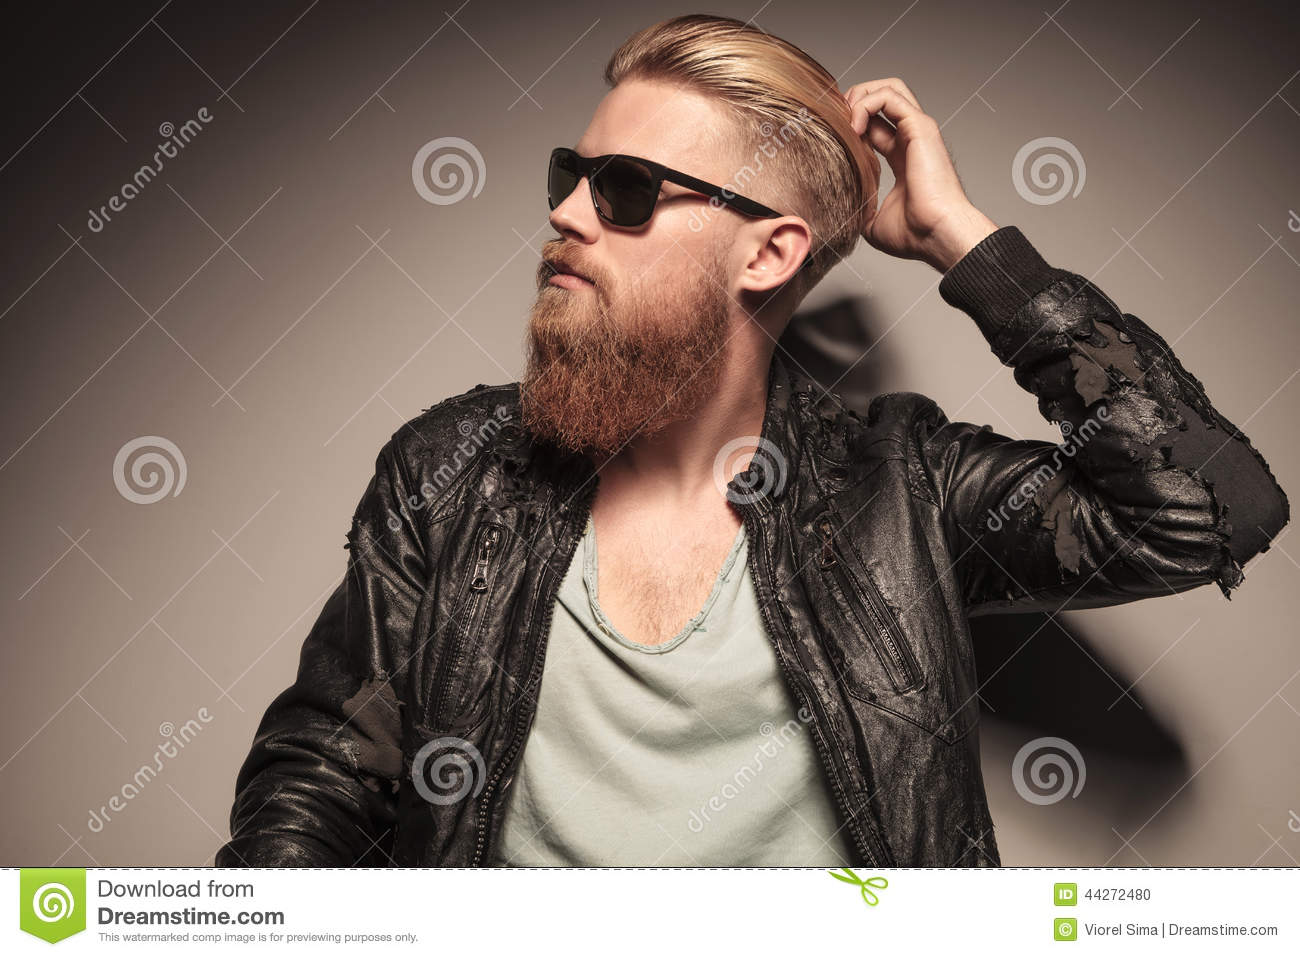 Handsome Man Fixing His Hair Stock Photo - Image: 44272480